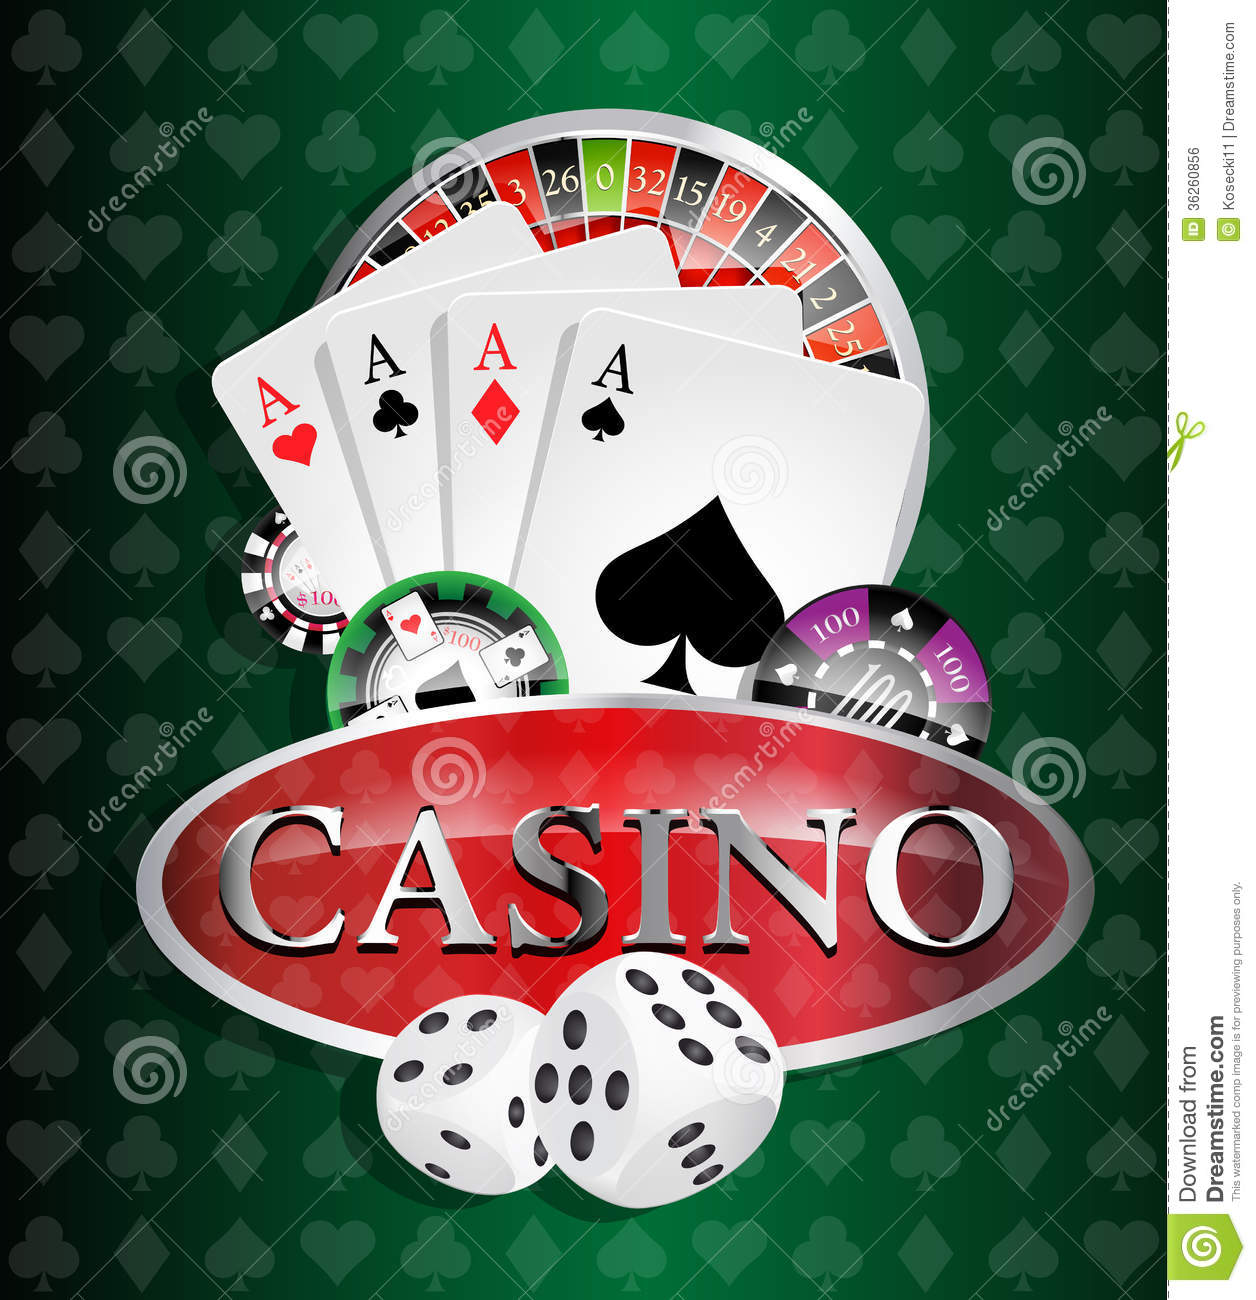 play free casino games online for free online casion